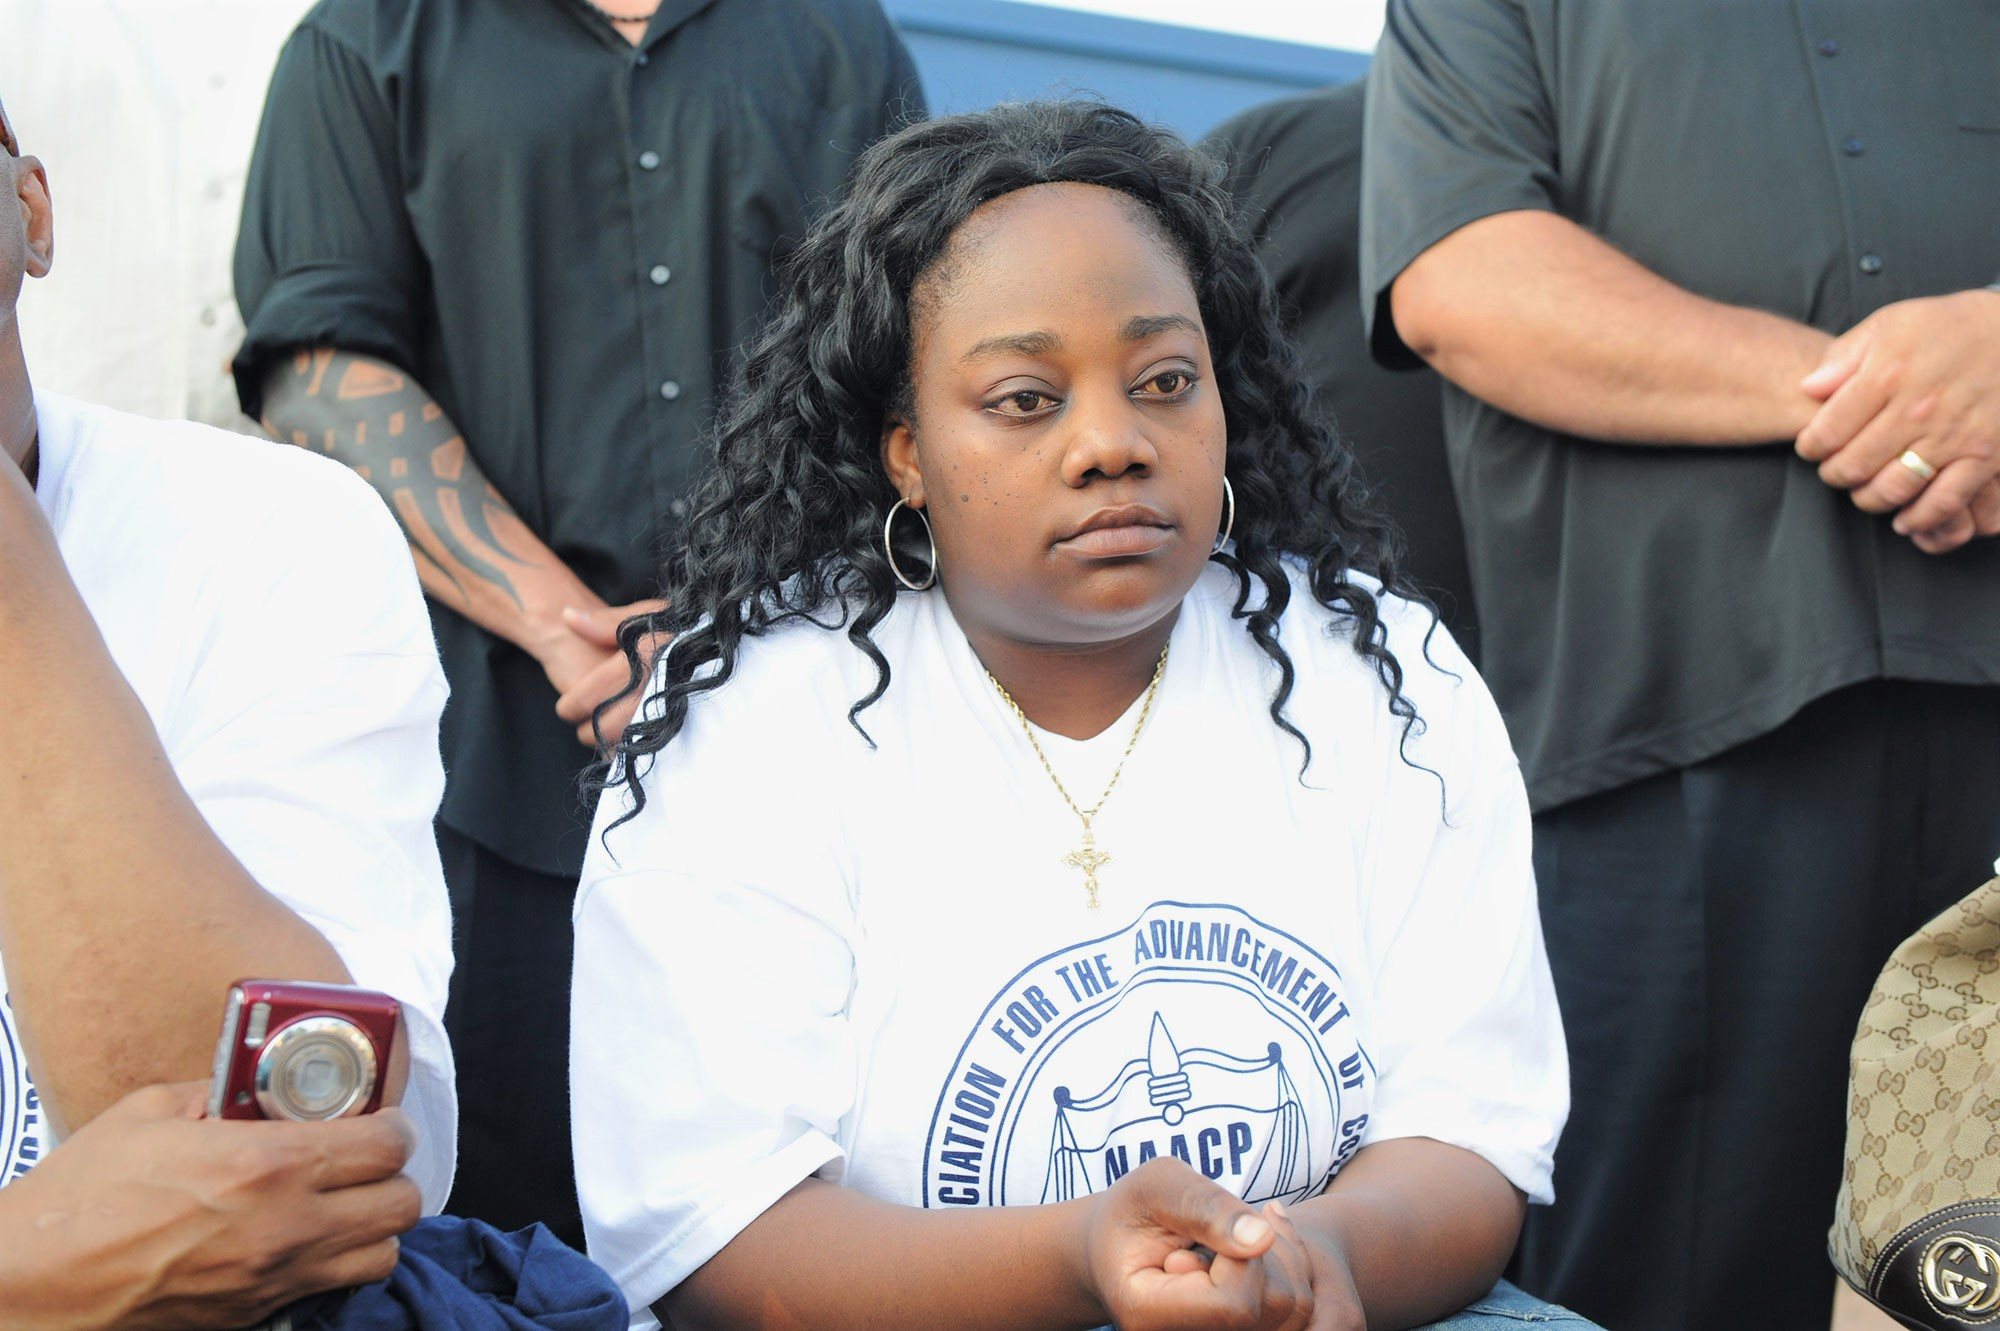 Homeless Mom Sentenced to 5 Years in Prison for Using Friend's Address to Enroll Son in School